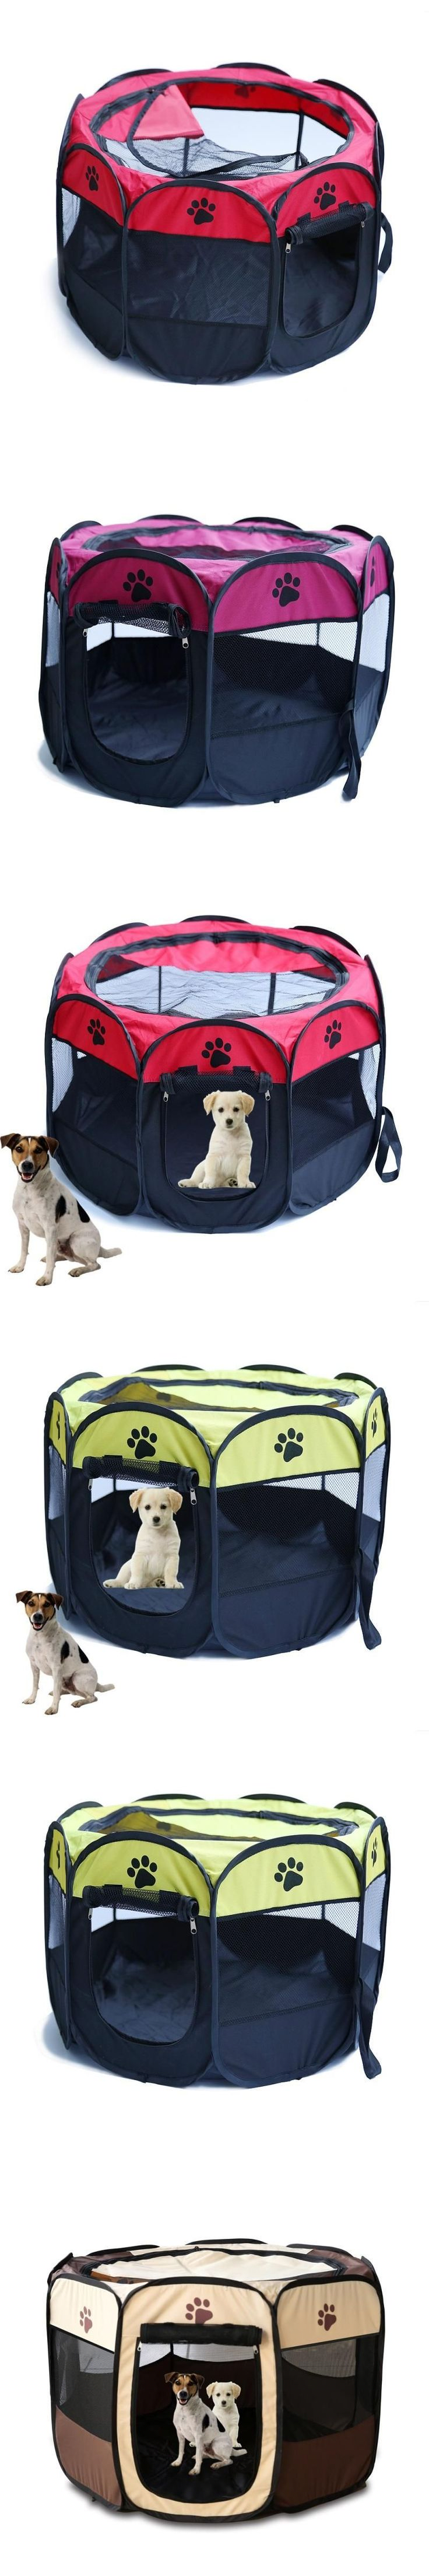 Dogs Bed Dog Cage Extra Large Cama Perro Kennel Soft Sofa Cama Pet Dog Cat Warm Bed Pet Dog Bed Sofa Puppy House Cat House #PuppyHouses